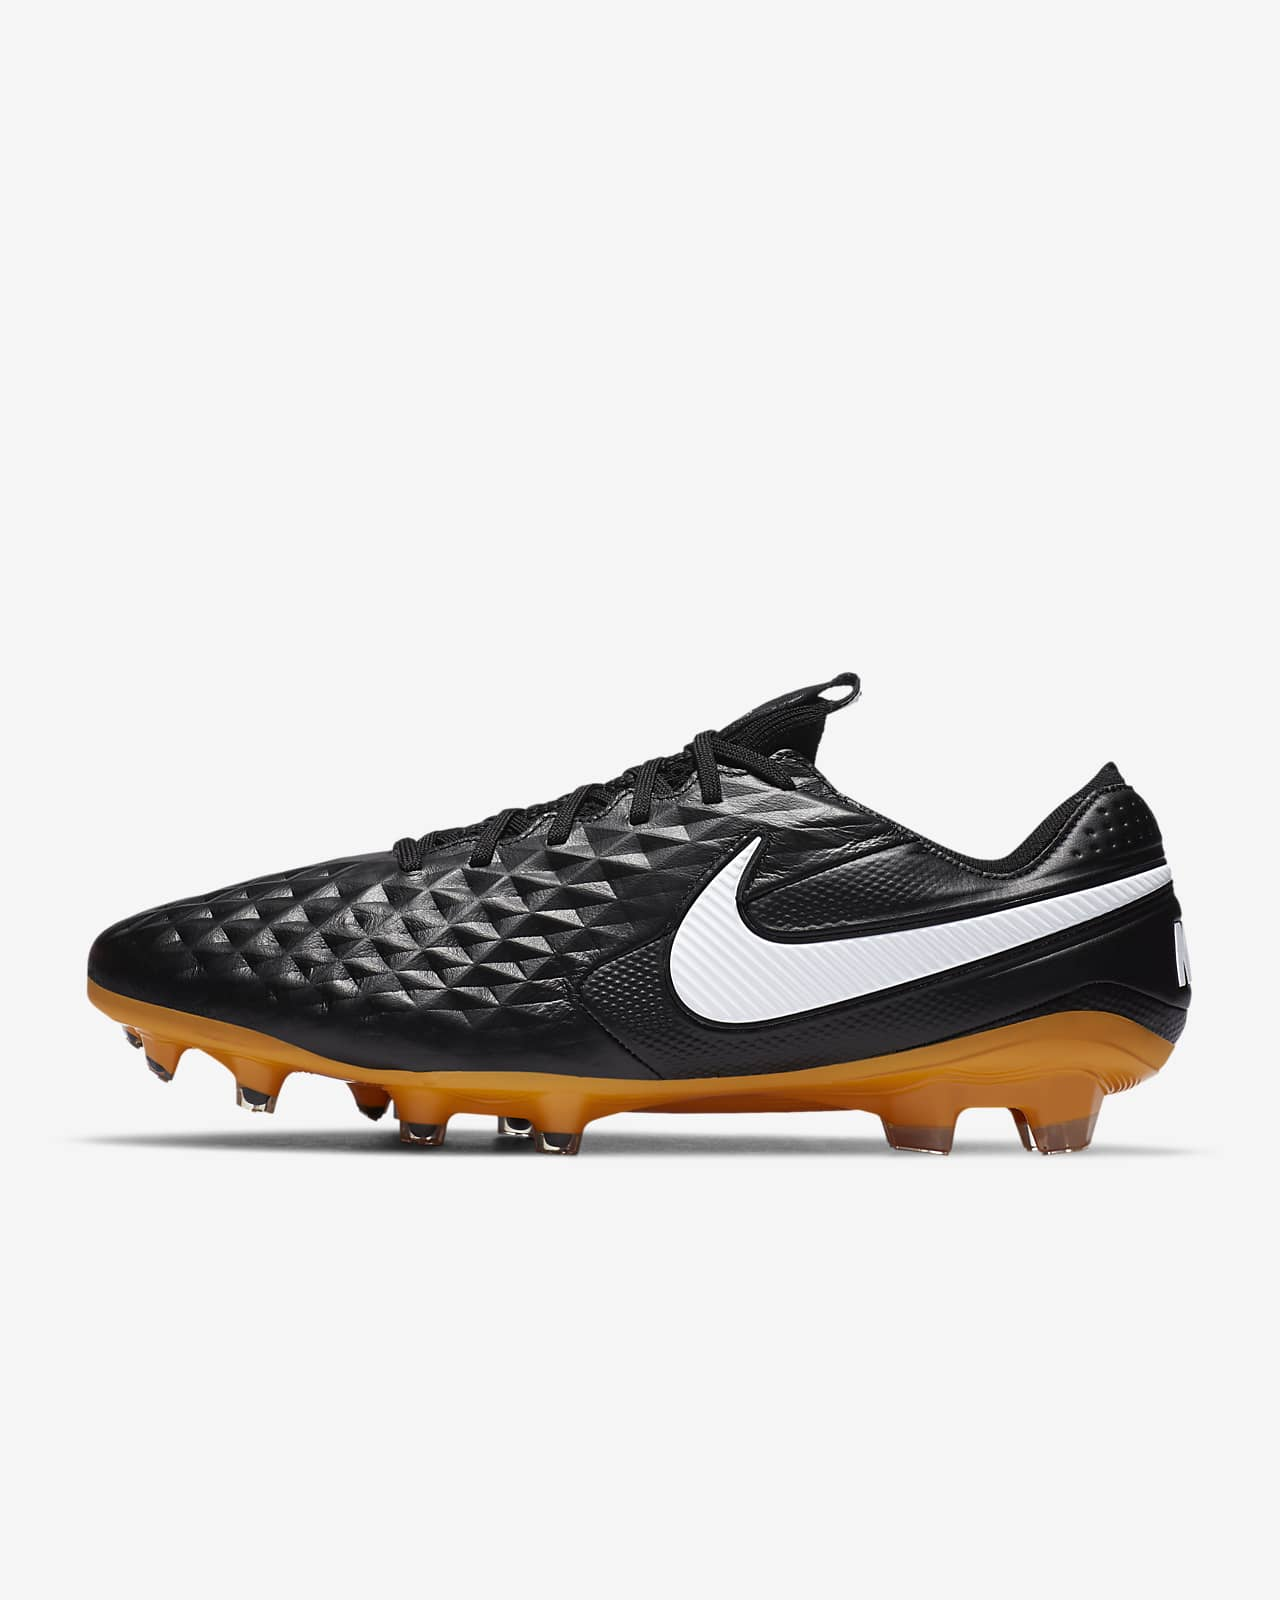 Nike Tiempo Legend 8 Elite Tech Craft FG Firm-Ground Football Boot